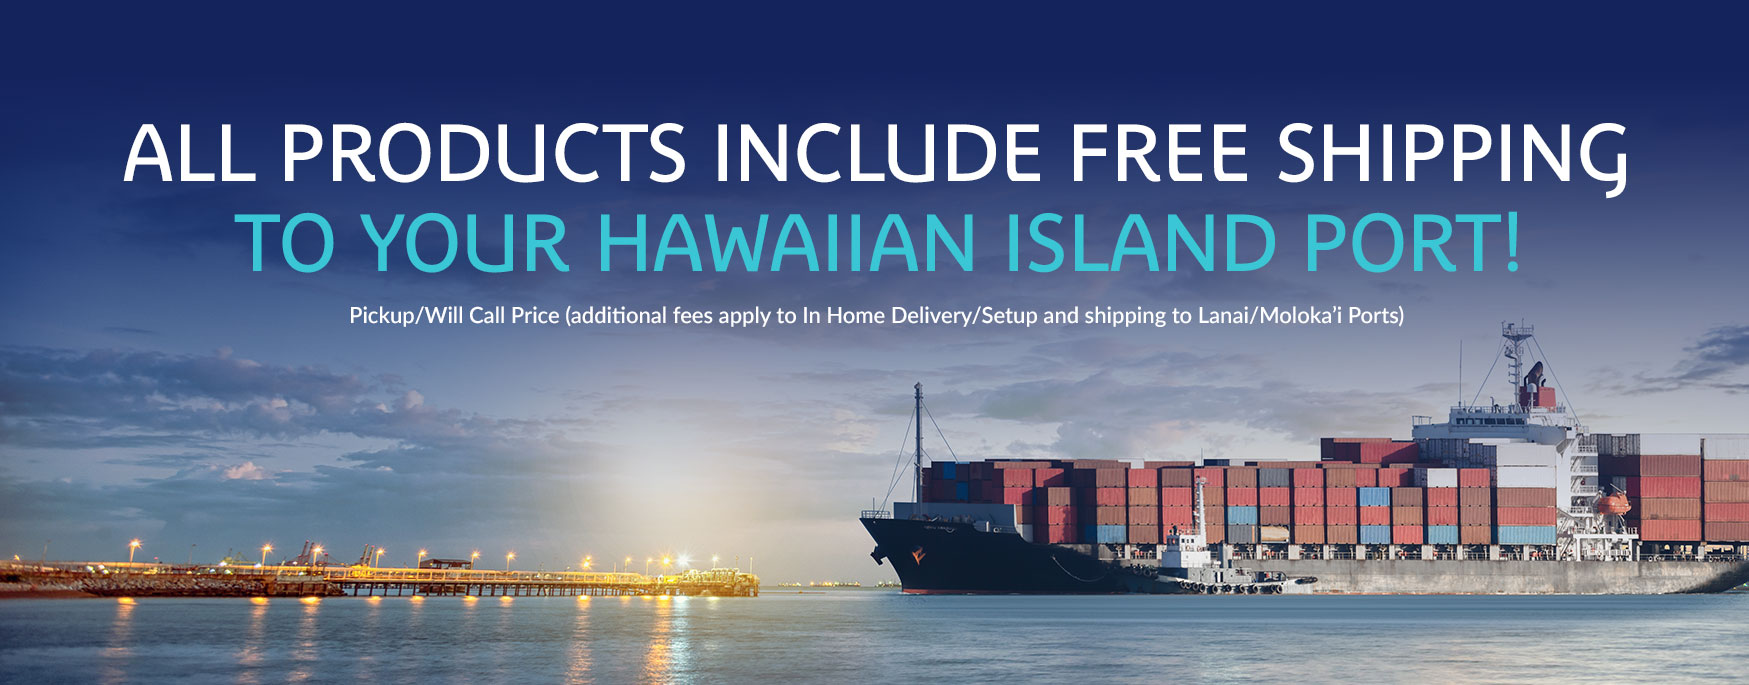 Hawaiis Online Furniture Store With Free Shipping To All